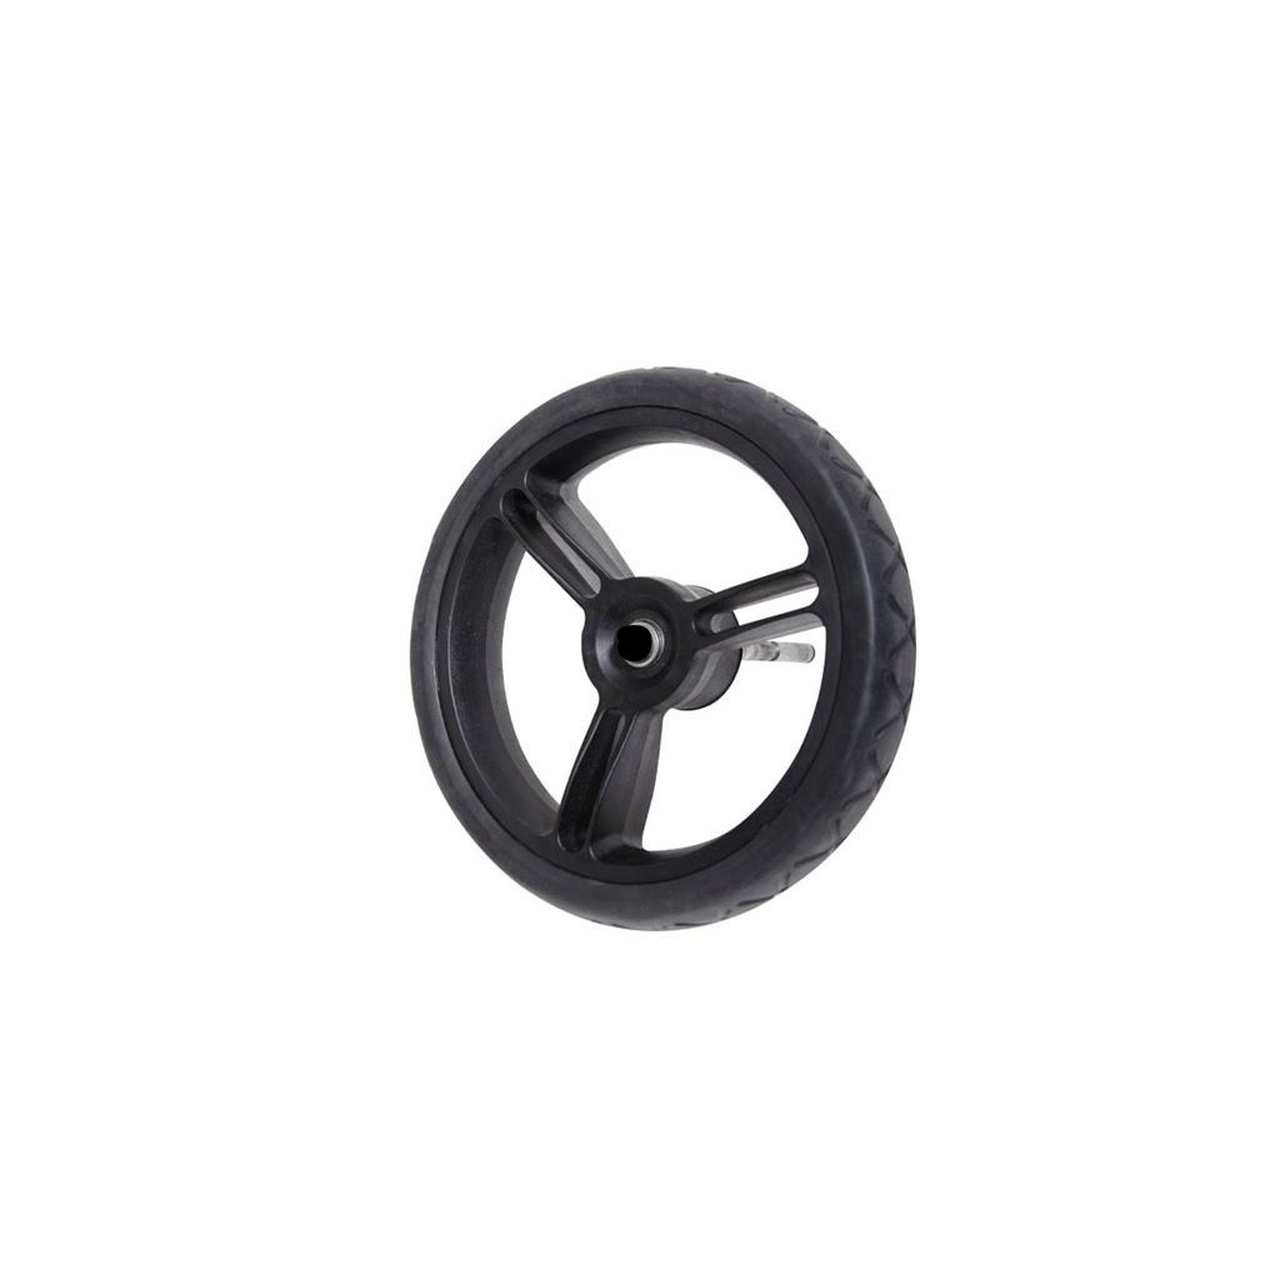 Mountain Buggy Rear Wheel 10 inch Aerotech Wheel fits Swift 2017 on at Baby Barn Discounts Aerotech rear wheel Replacement spare part for Mountain Buggy Swift 2017+.